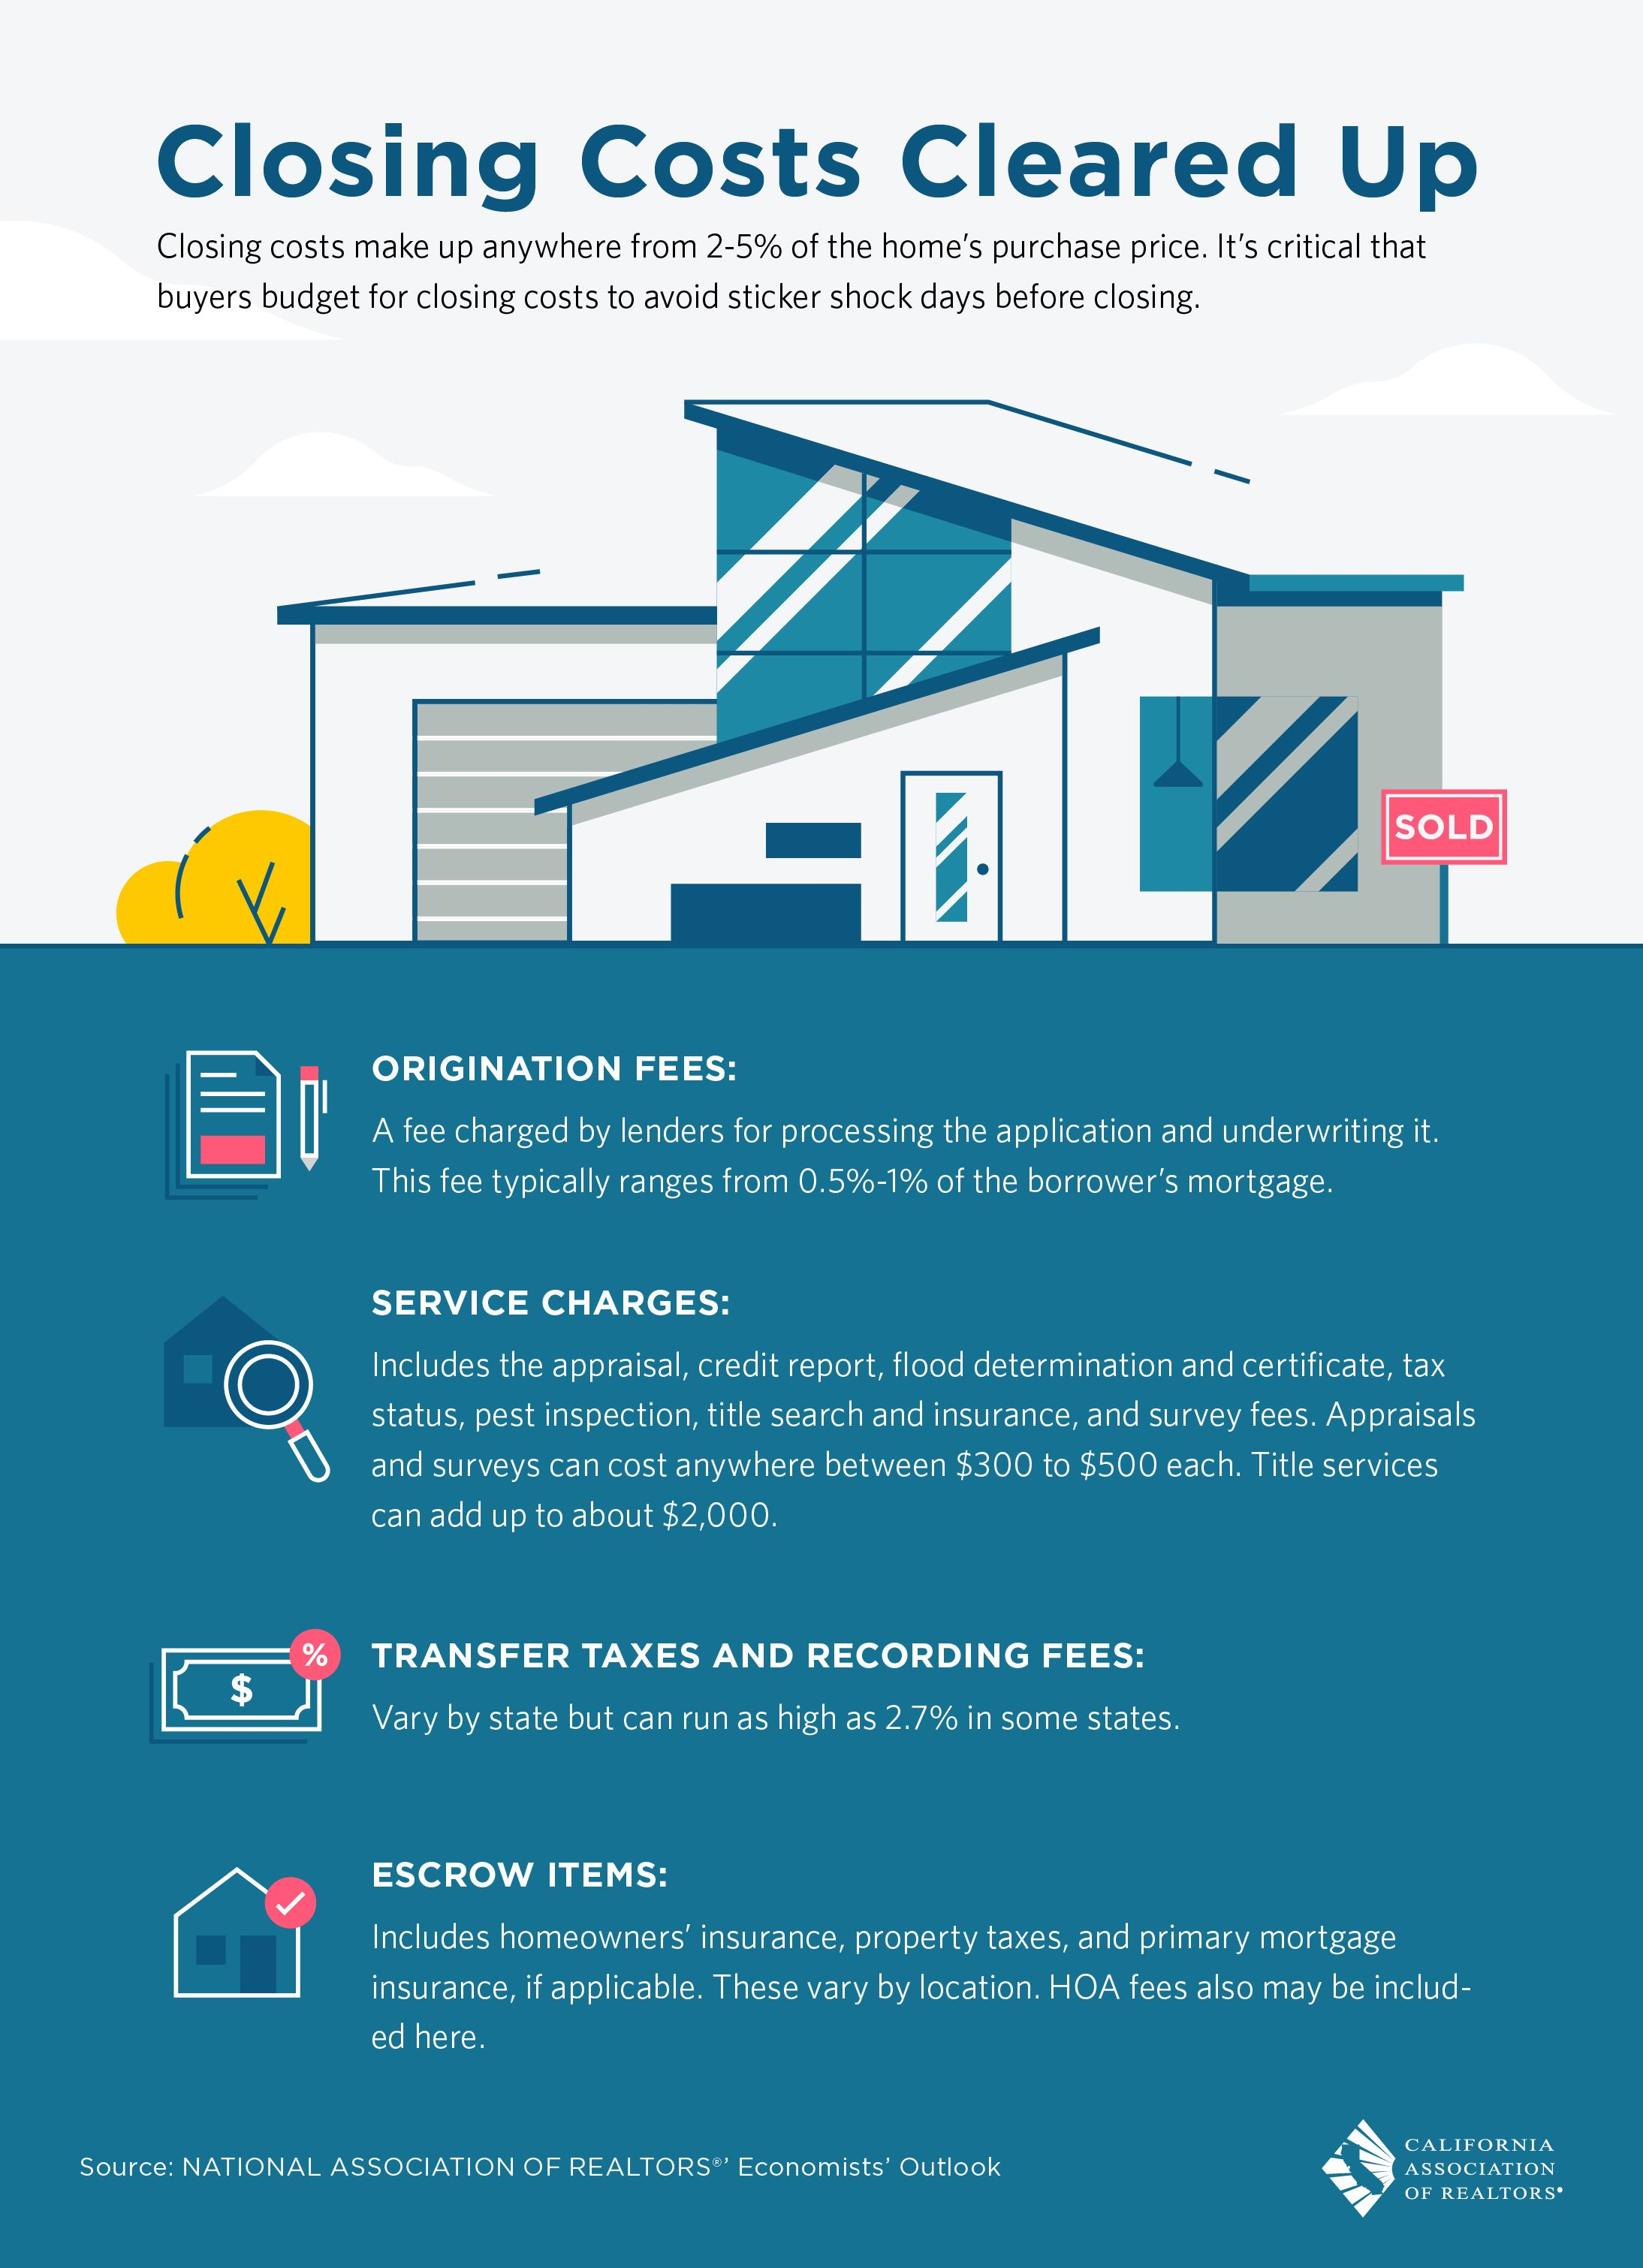 Closing Costs Make Up 2 5 Of The Home Purchase Price Its Critical That Buyers Budget For Closing Costs To In 2020 Closing Costs Real Estate Information Underwriting